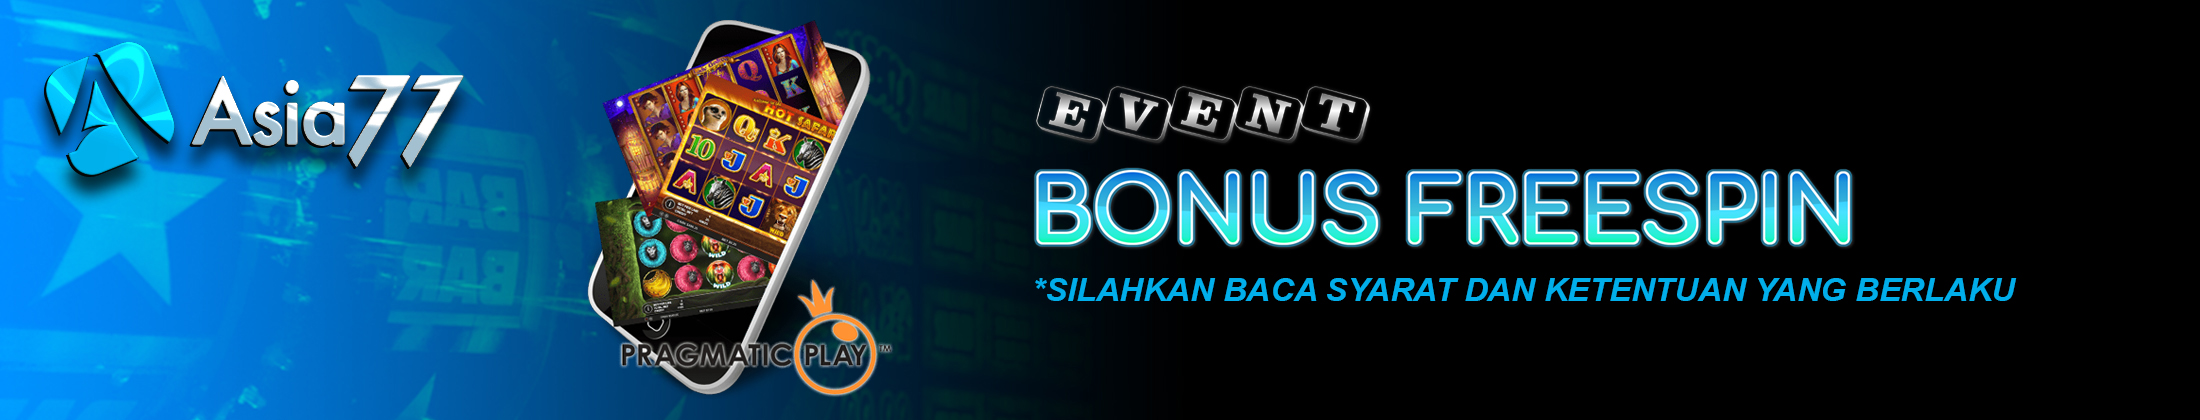 EVENT BONUS FREESPIN ASIA77